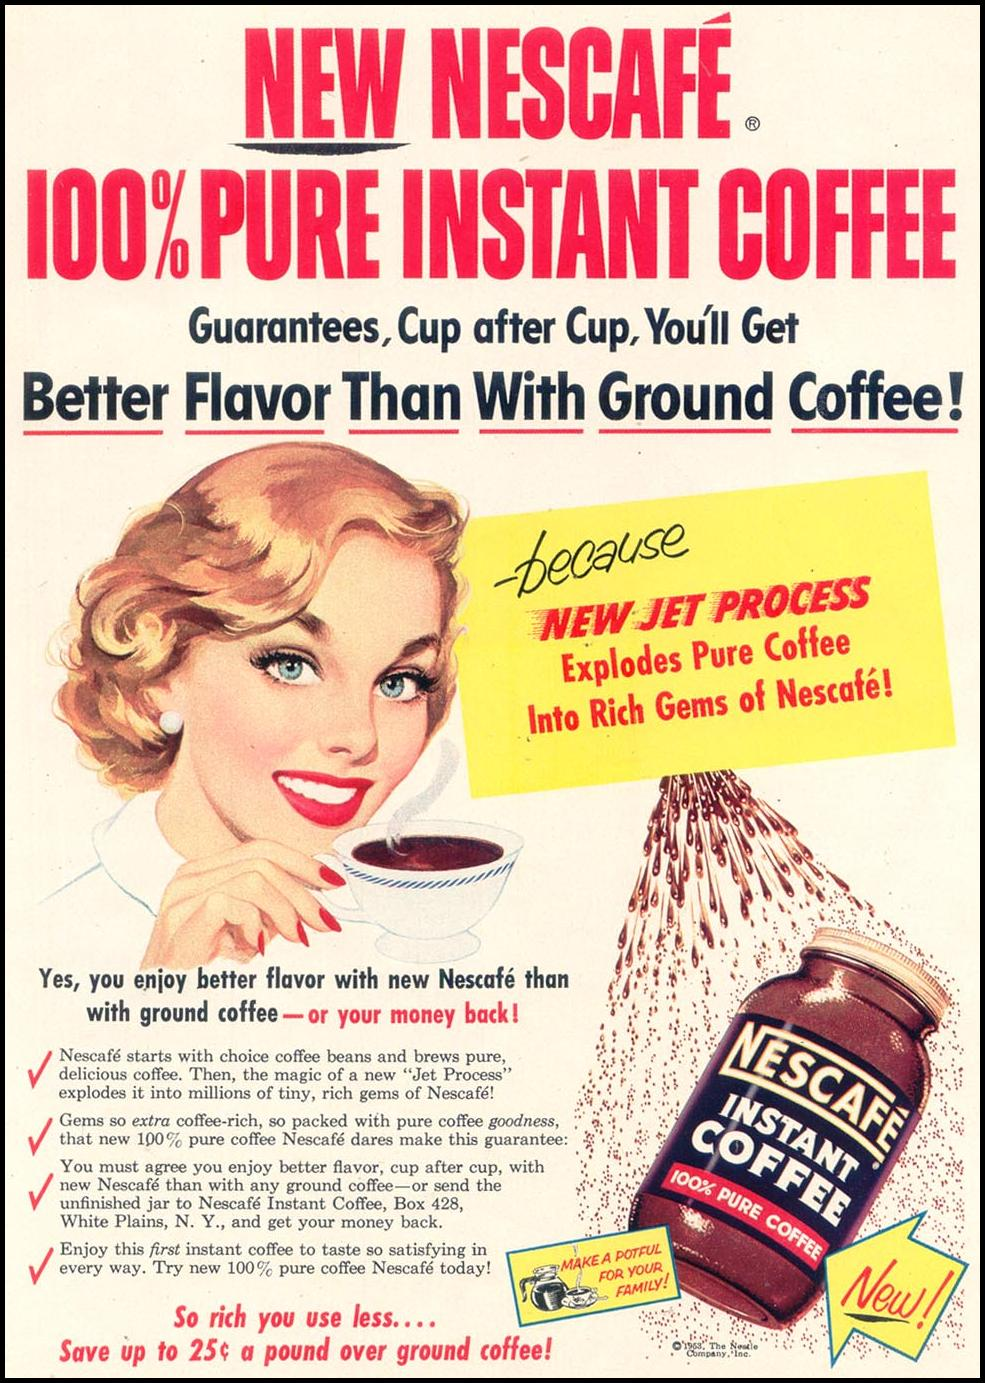 NESCAFE INSTANT COFFEE WOMAN'S DAY 03/01/1954 p. 27